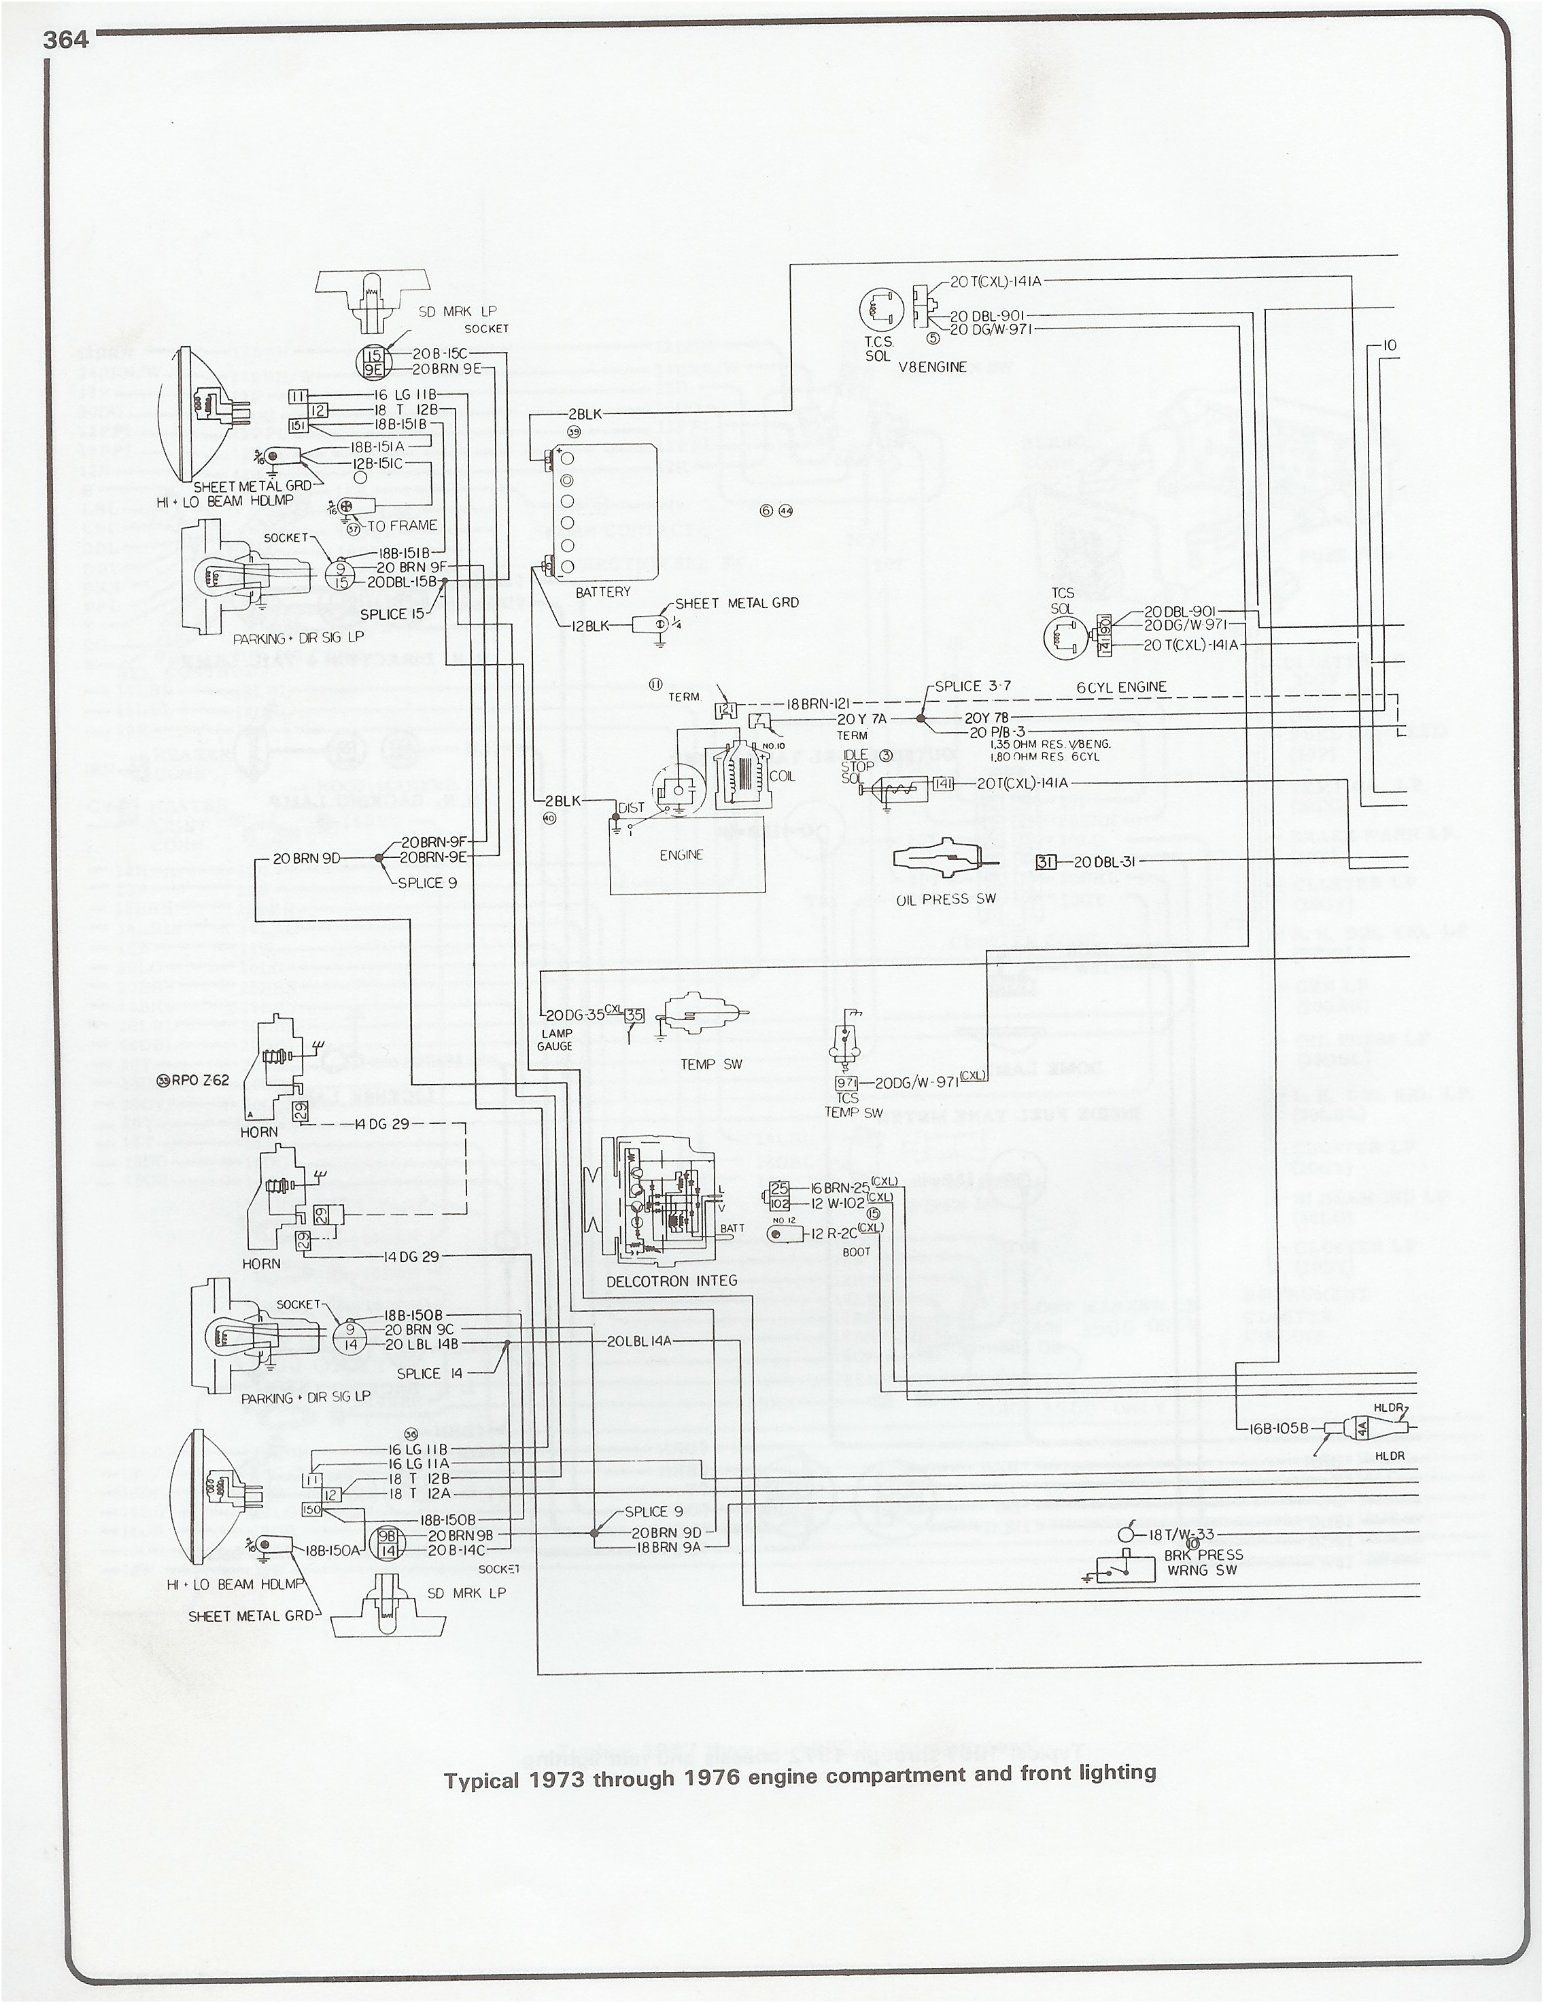 1975 chevy truck ignition diagram wiring diagrams schematic rh 5 klawue richarddeinmakler de